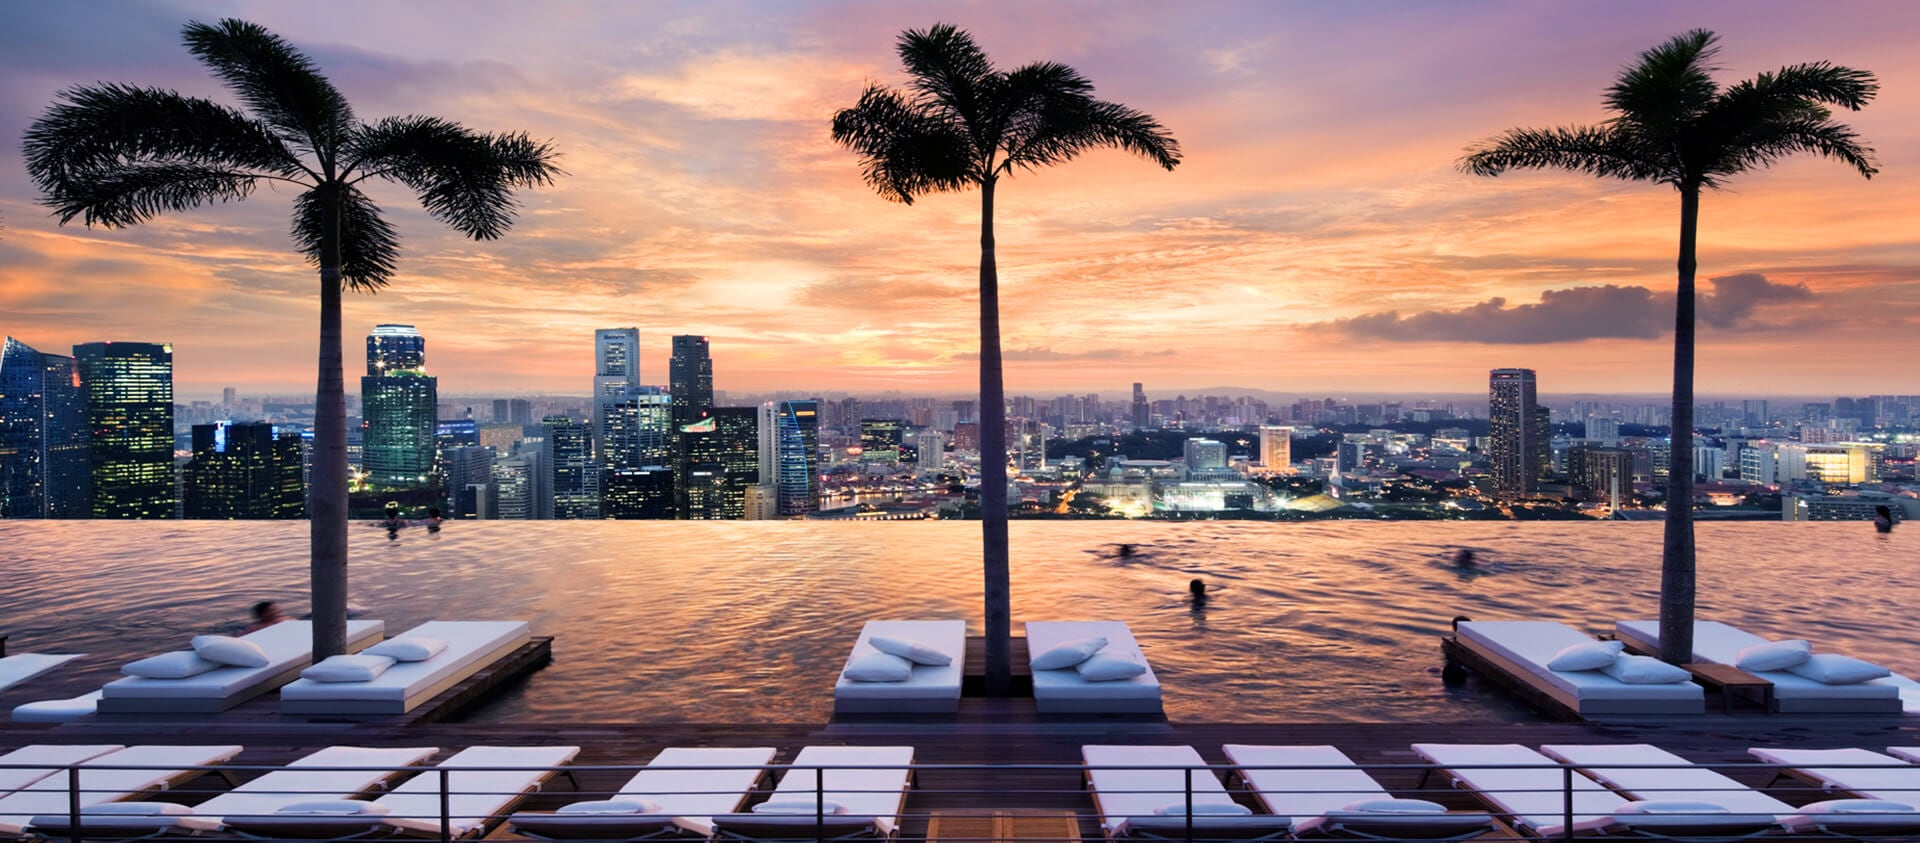 Singapore Luxury Hotel And Lifestyle Destination Marina Bay Sands